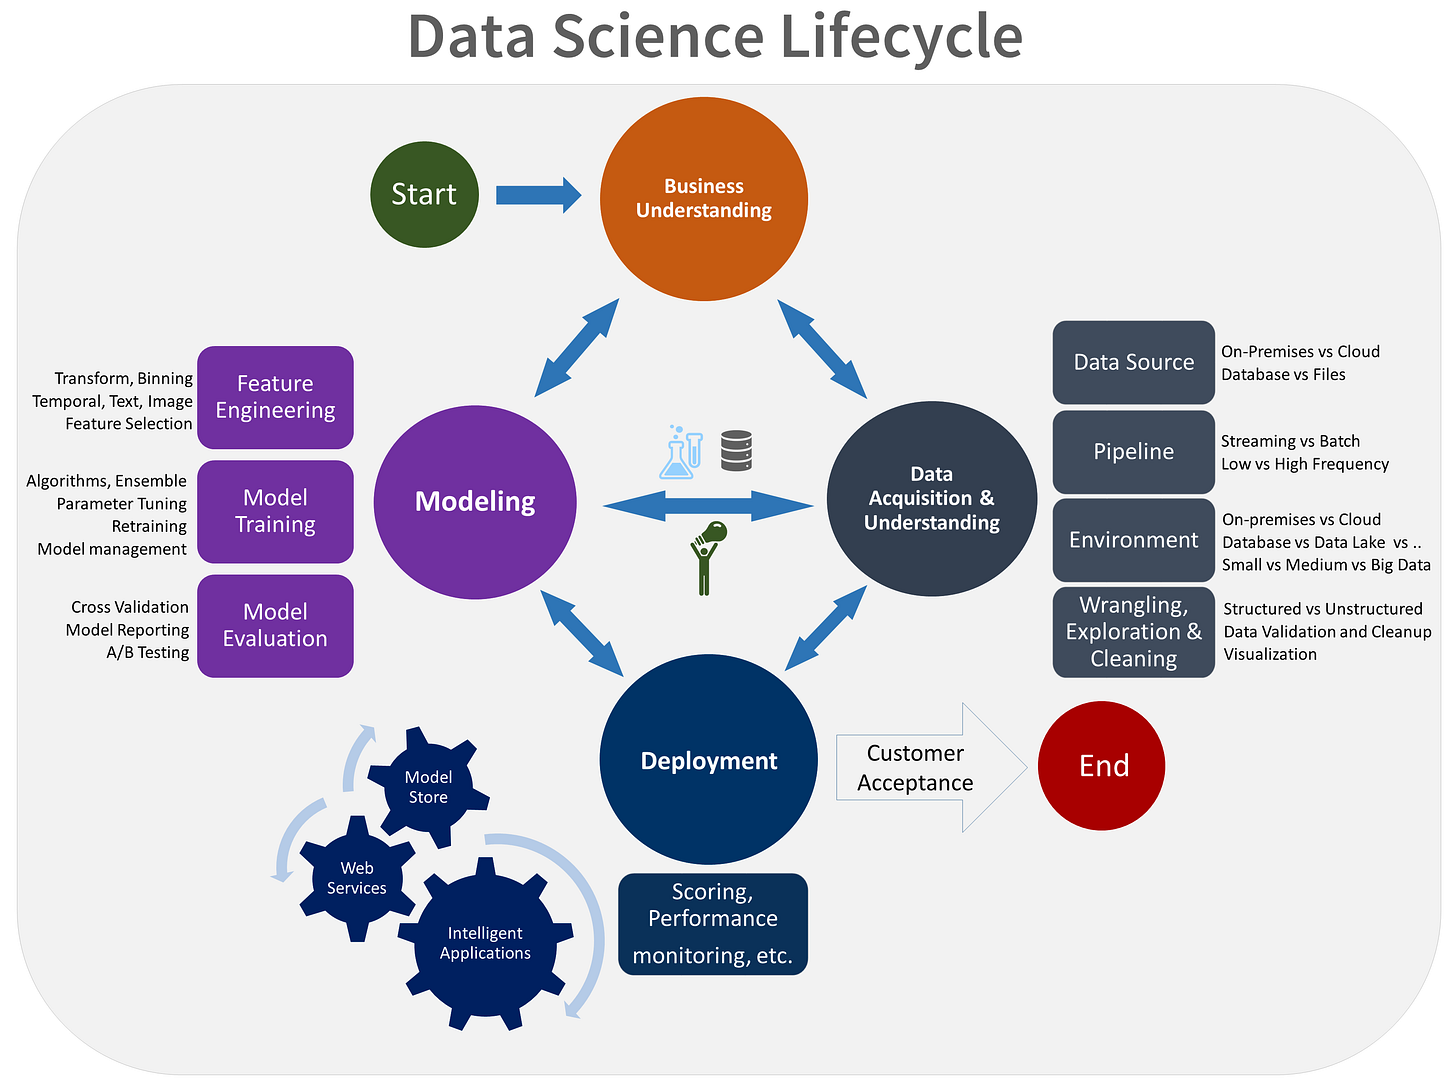 Diagram shows the data science lifecycle, including business understanding, data acquisition / understanding, modeling and deployment.